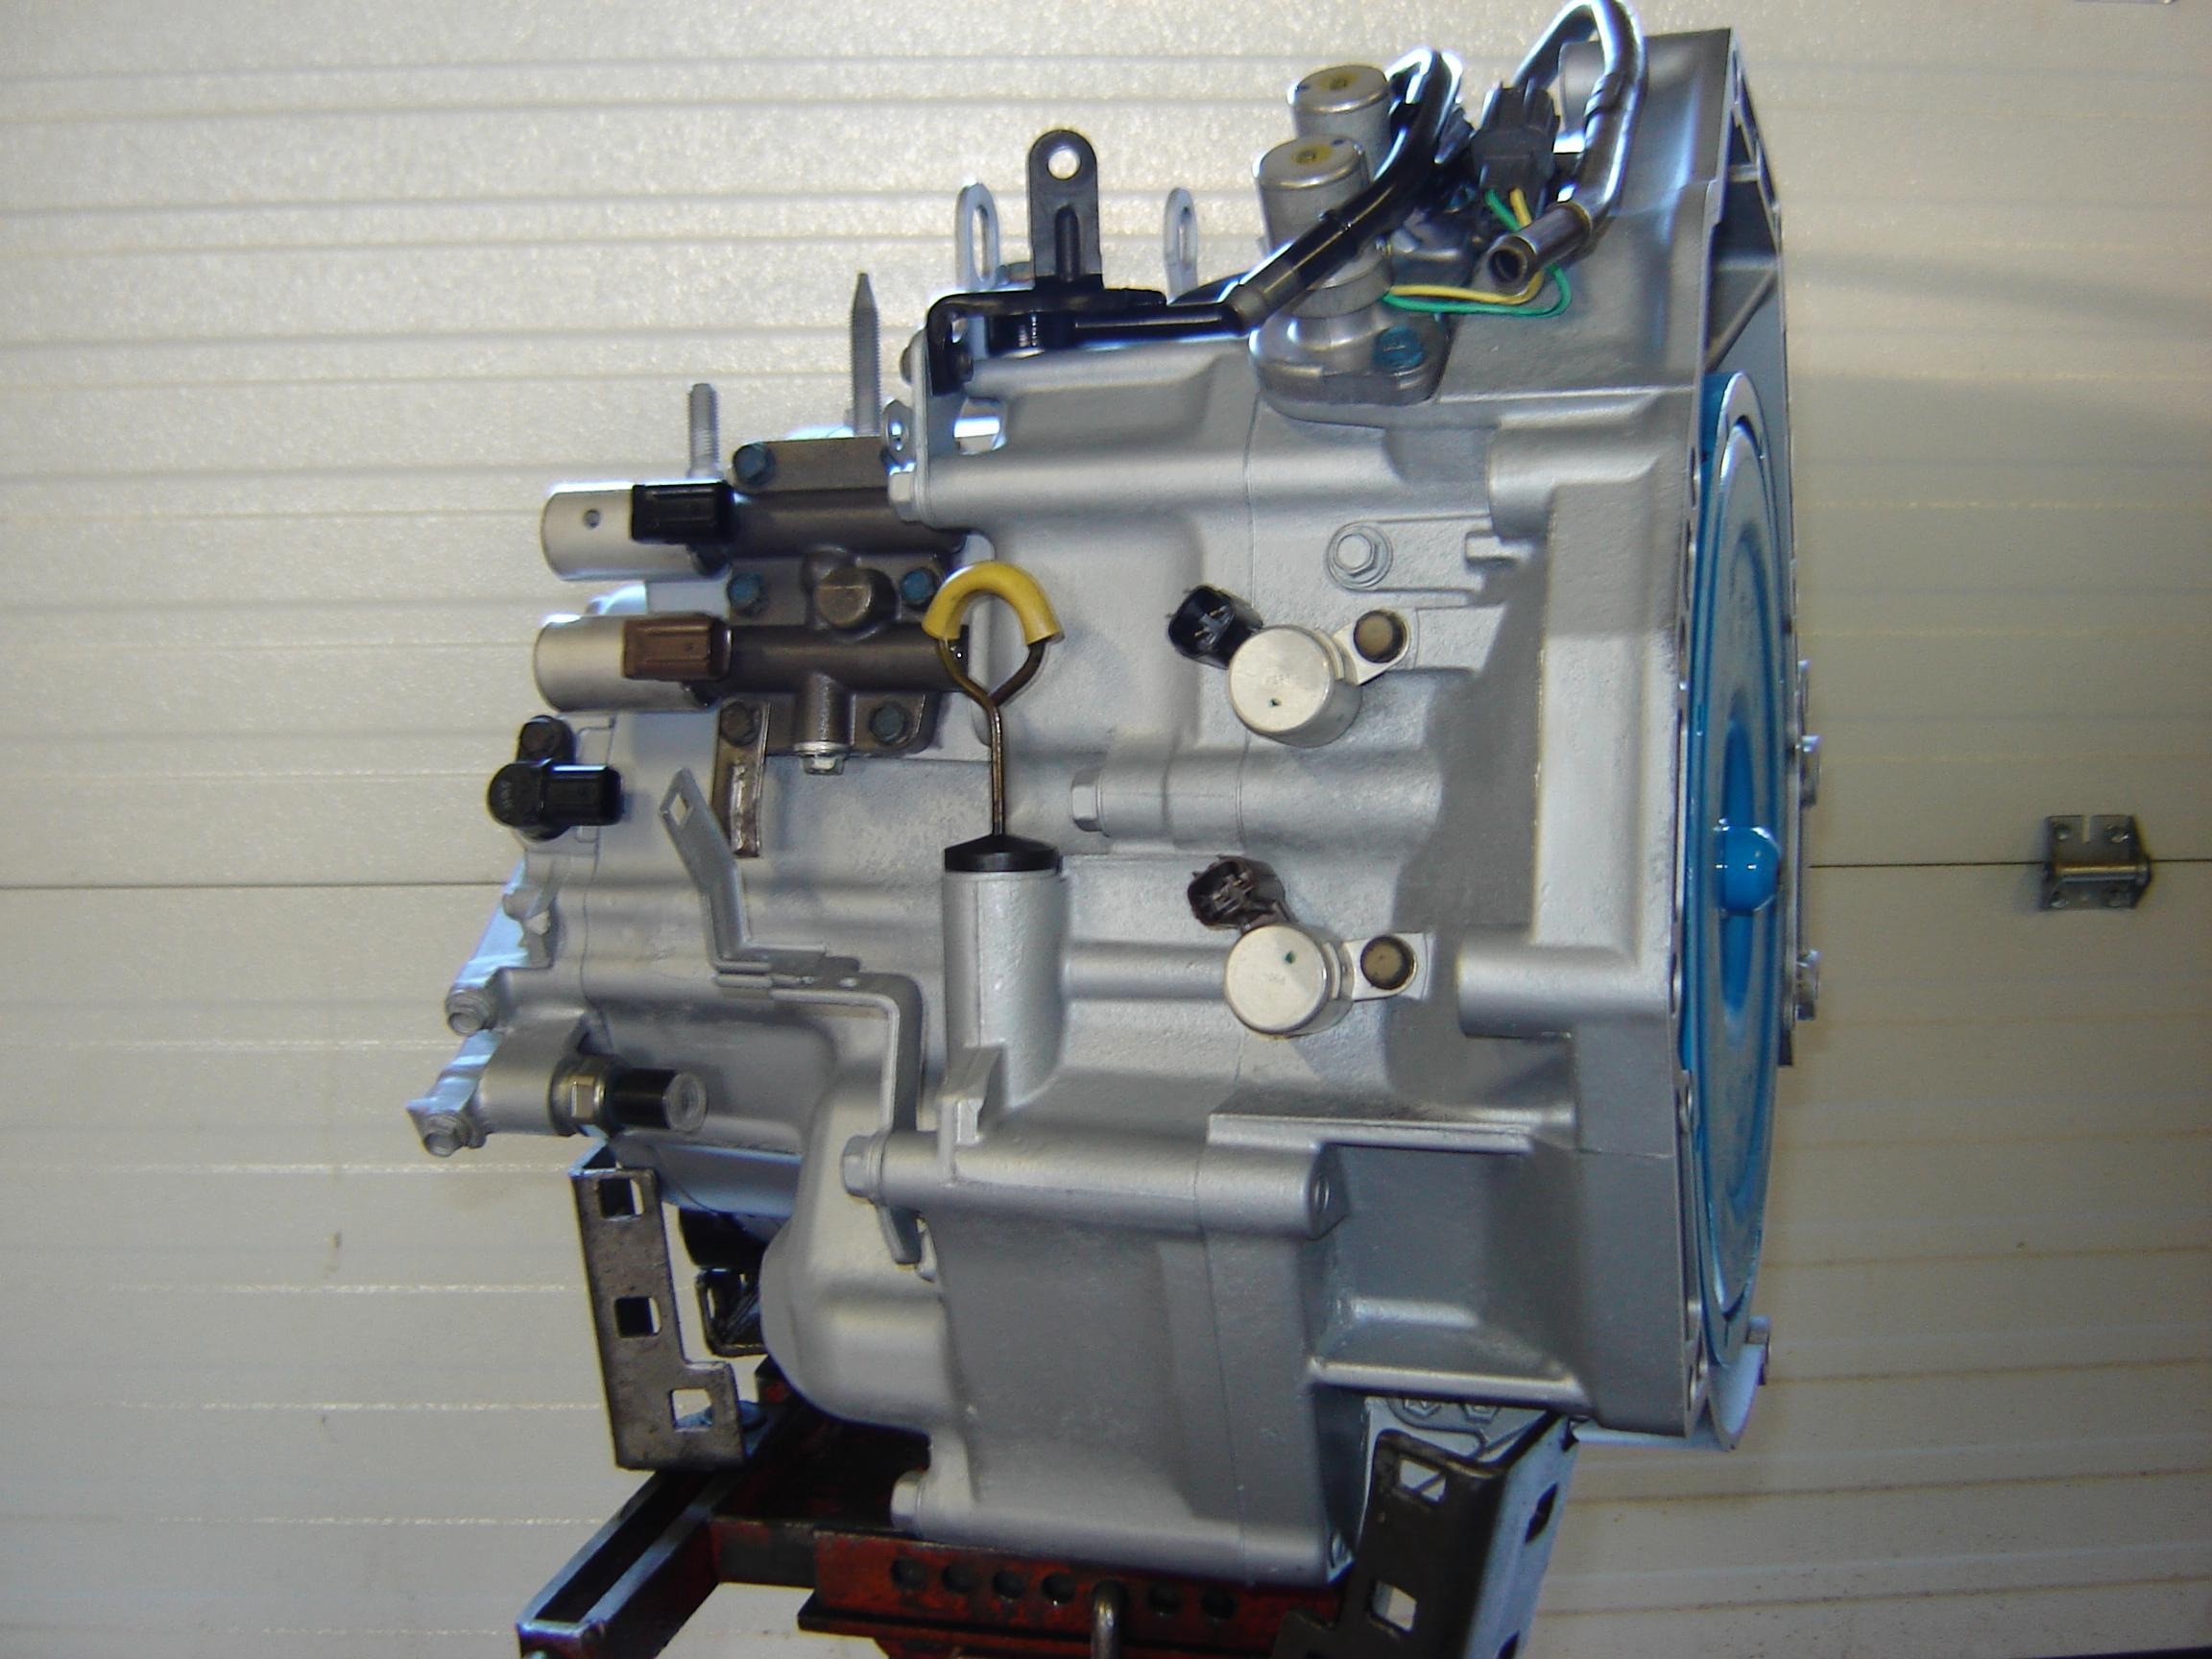 This is how a typical rebuilt Honda transaxle will look moments before installation, complete with a remanufactured torque converter and new electronics.